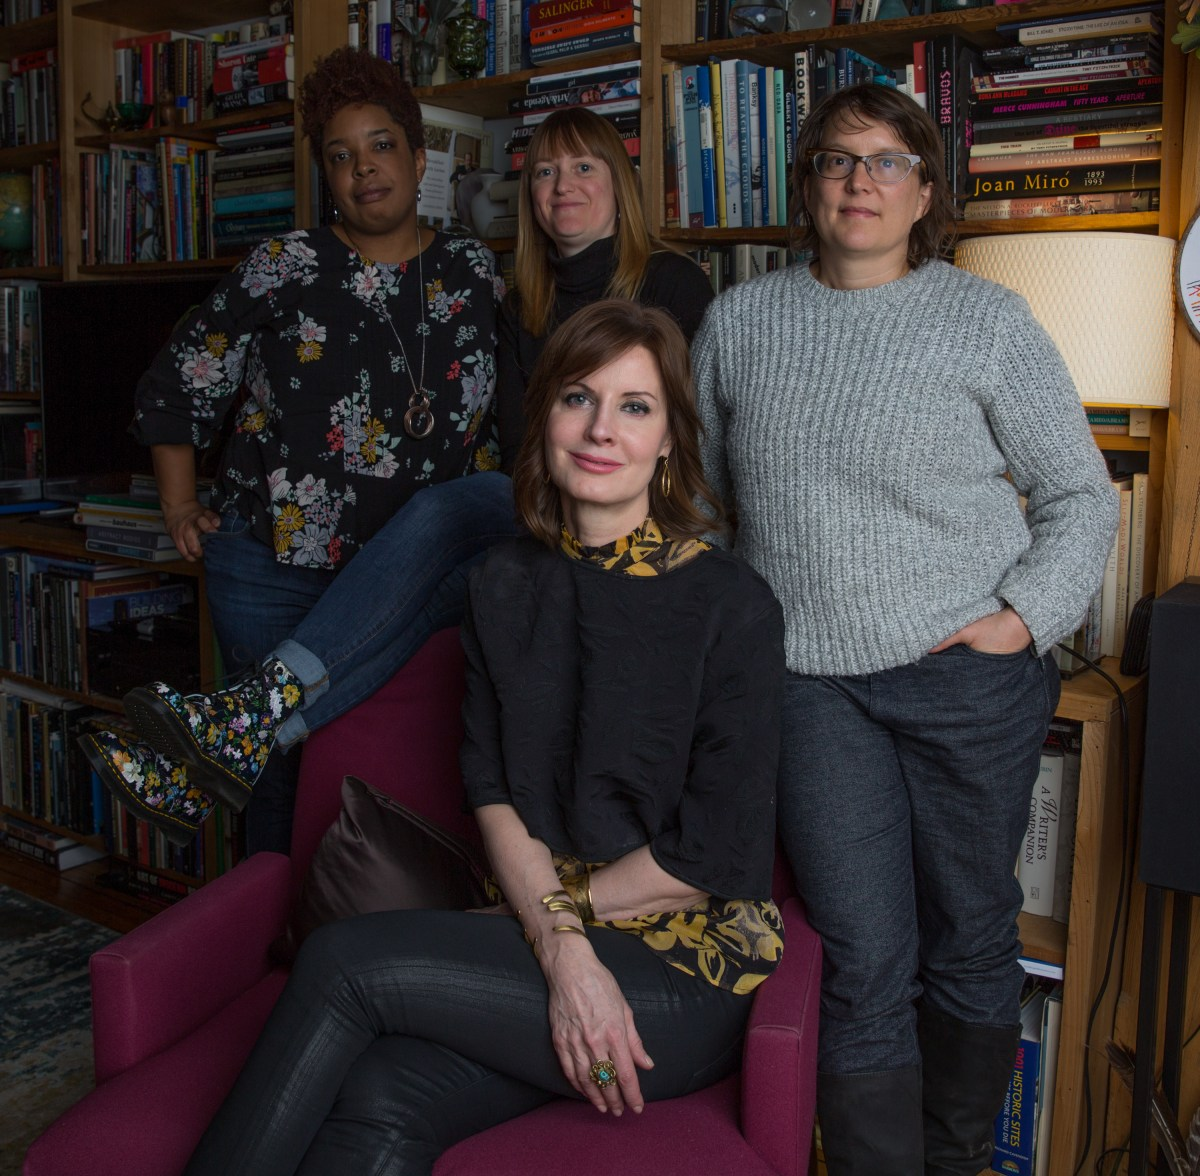 Power Chords: A Conversation with Women in Chicago Music